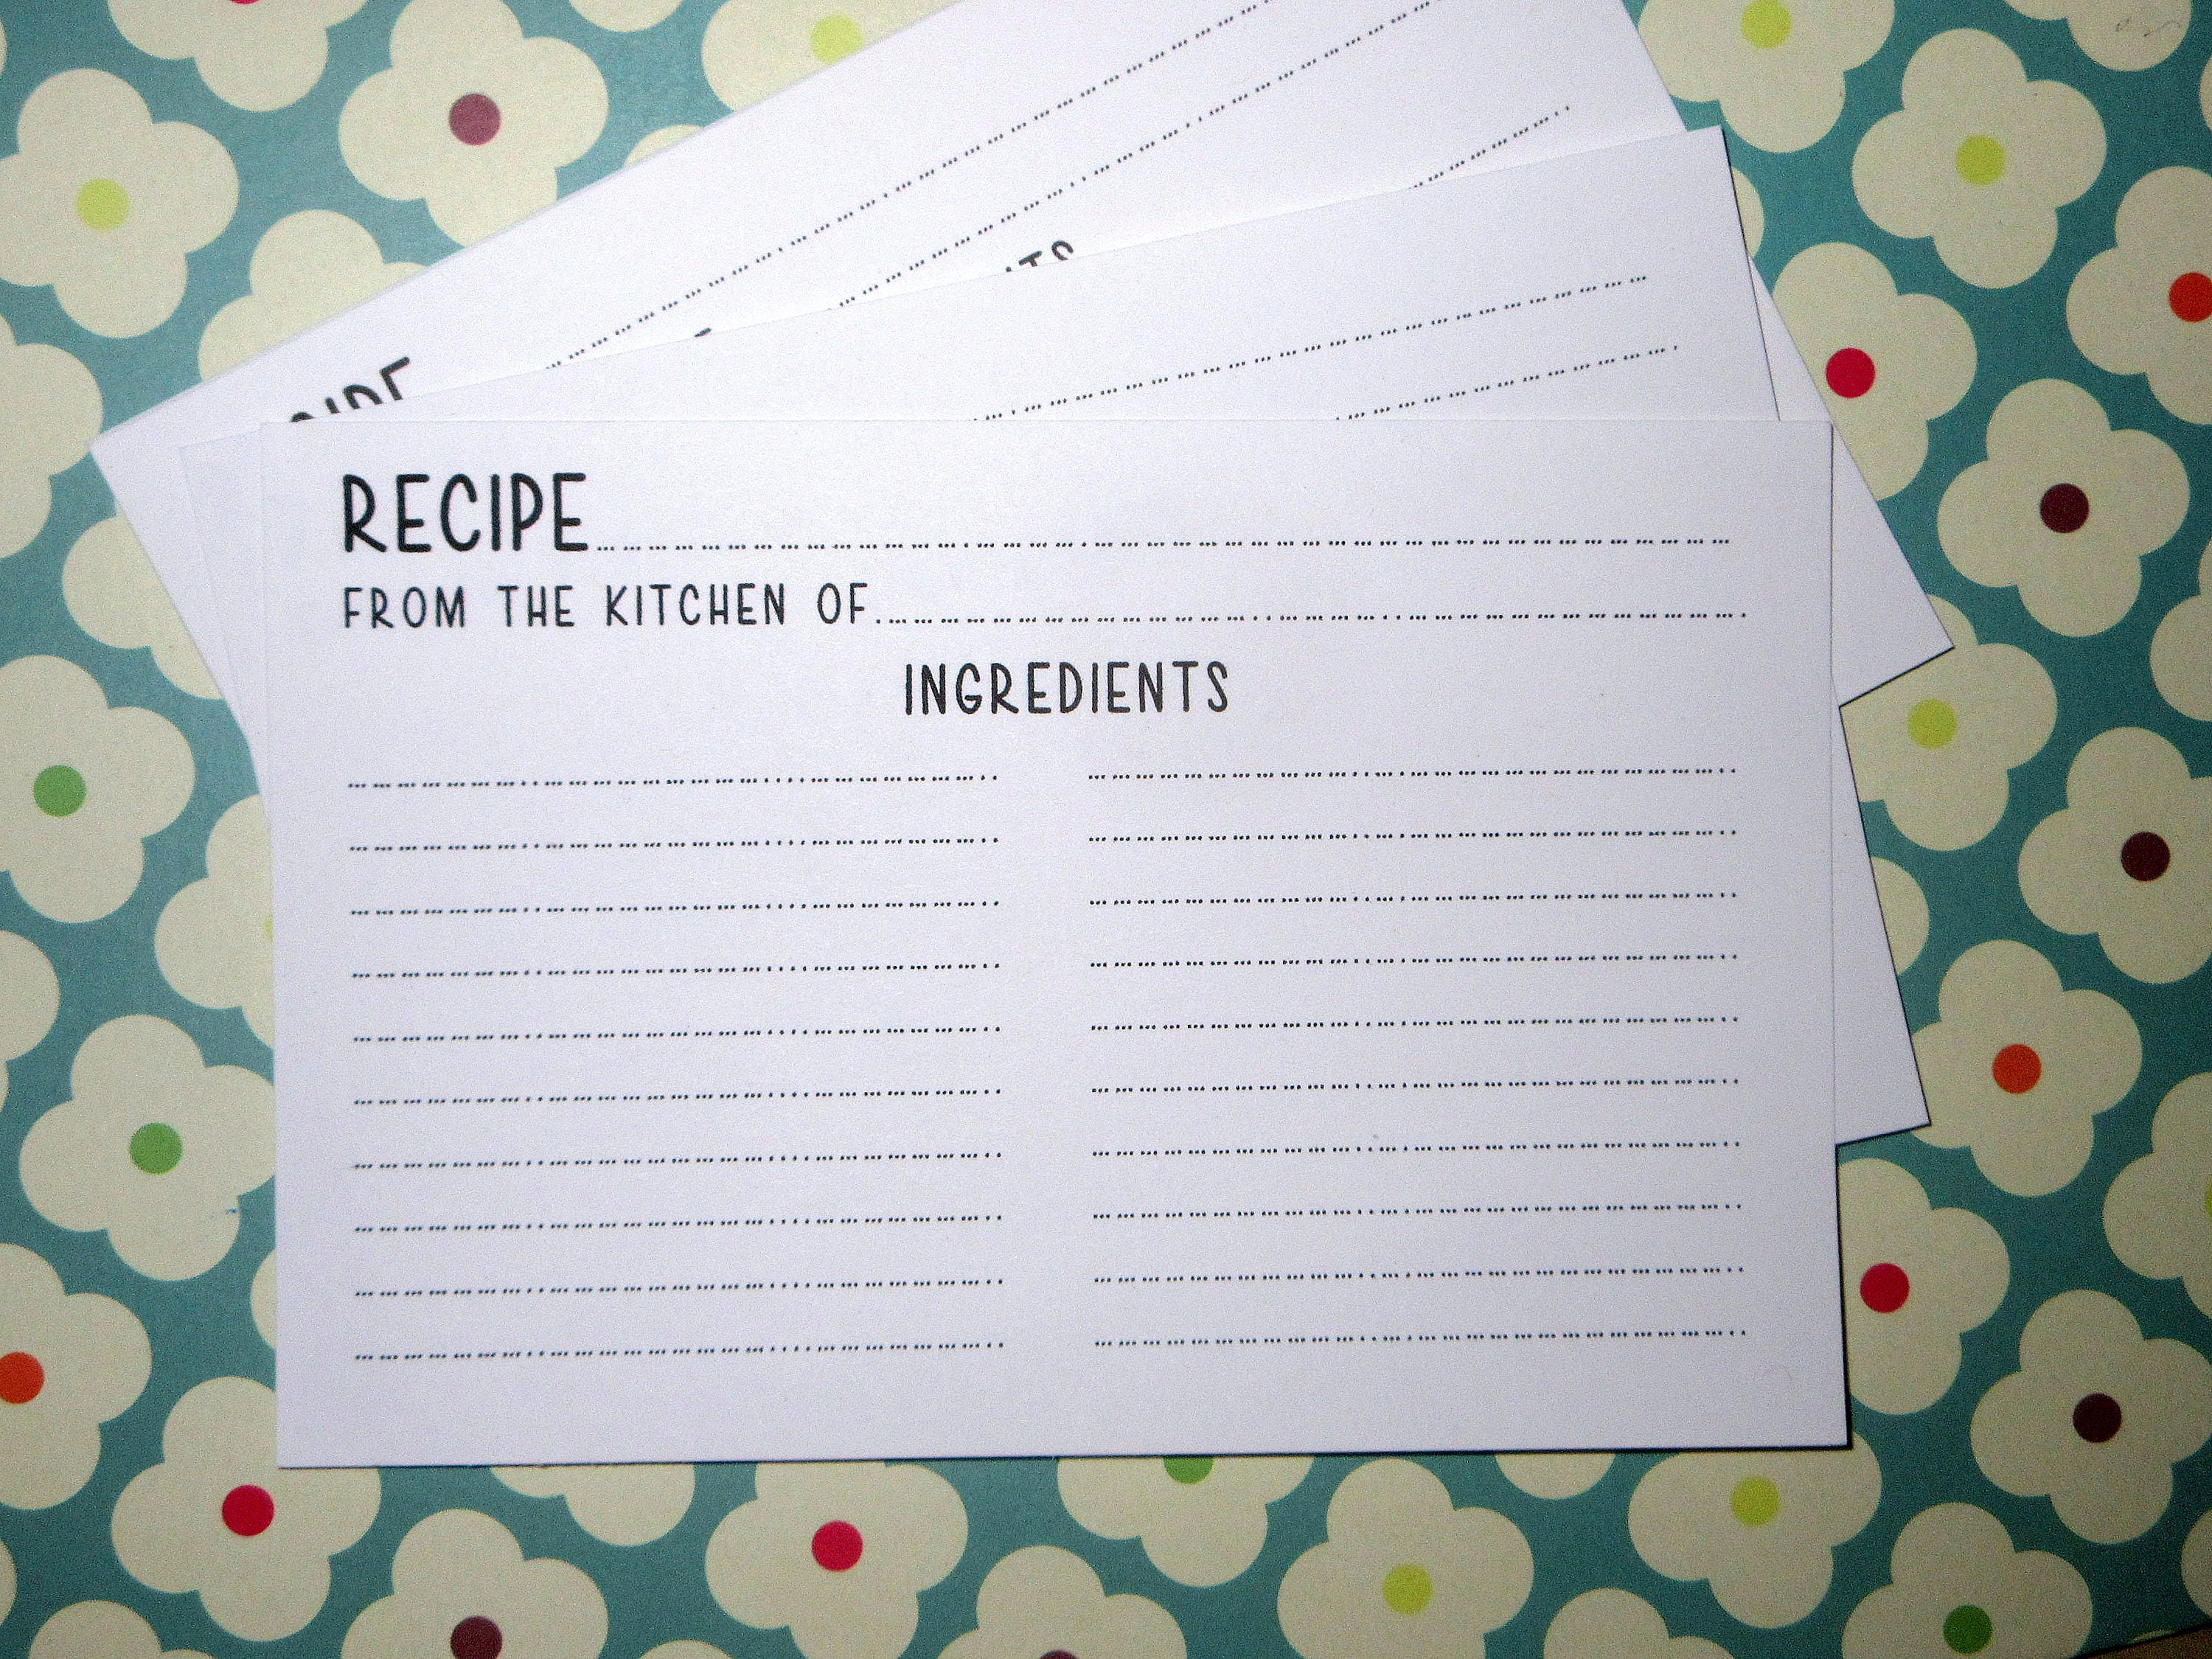 It's just a photo of Dashing Cute Recipe Cards